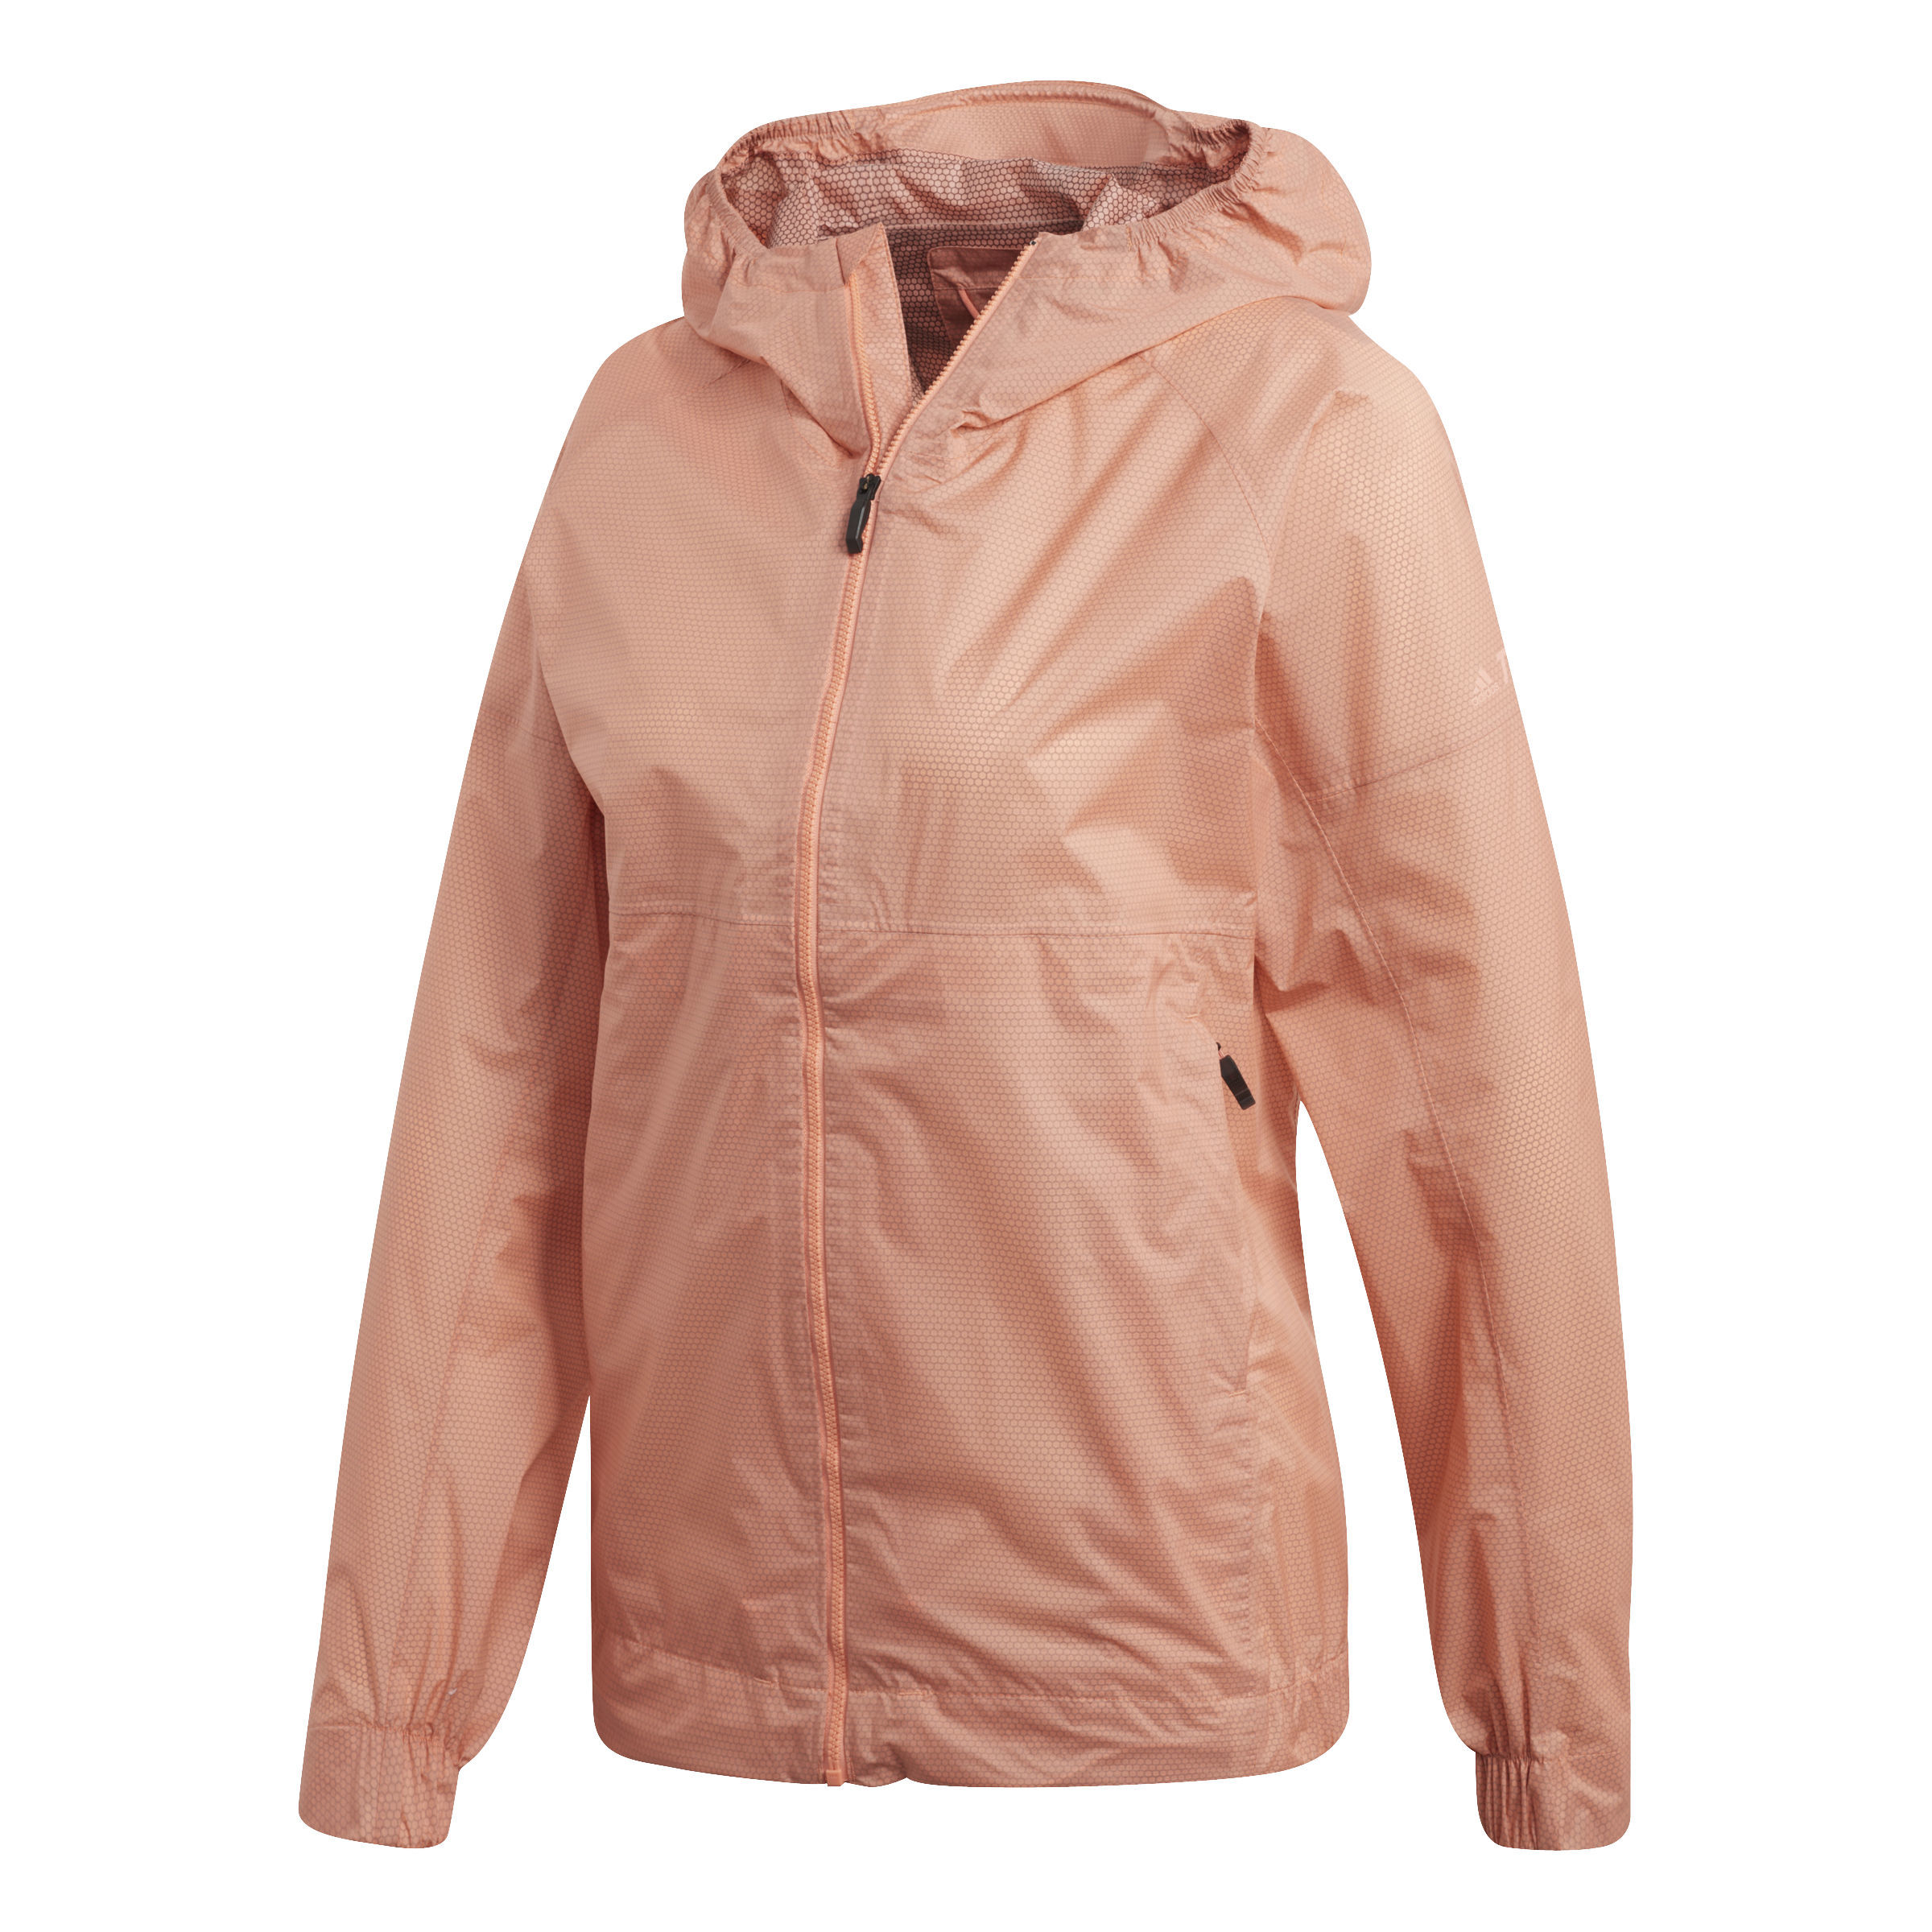 17223b9b4023 Be the First to Review the Adidas Outdoor Fastpack 2.5L Ultralight Rain  Jacket - Women's — Page 1